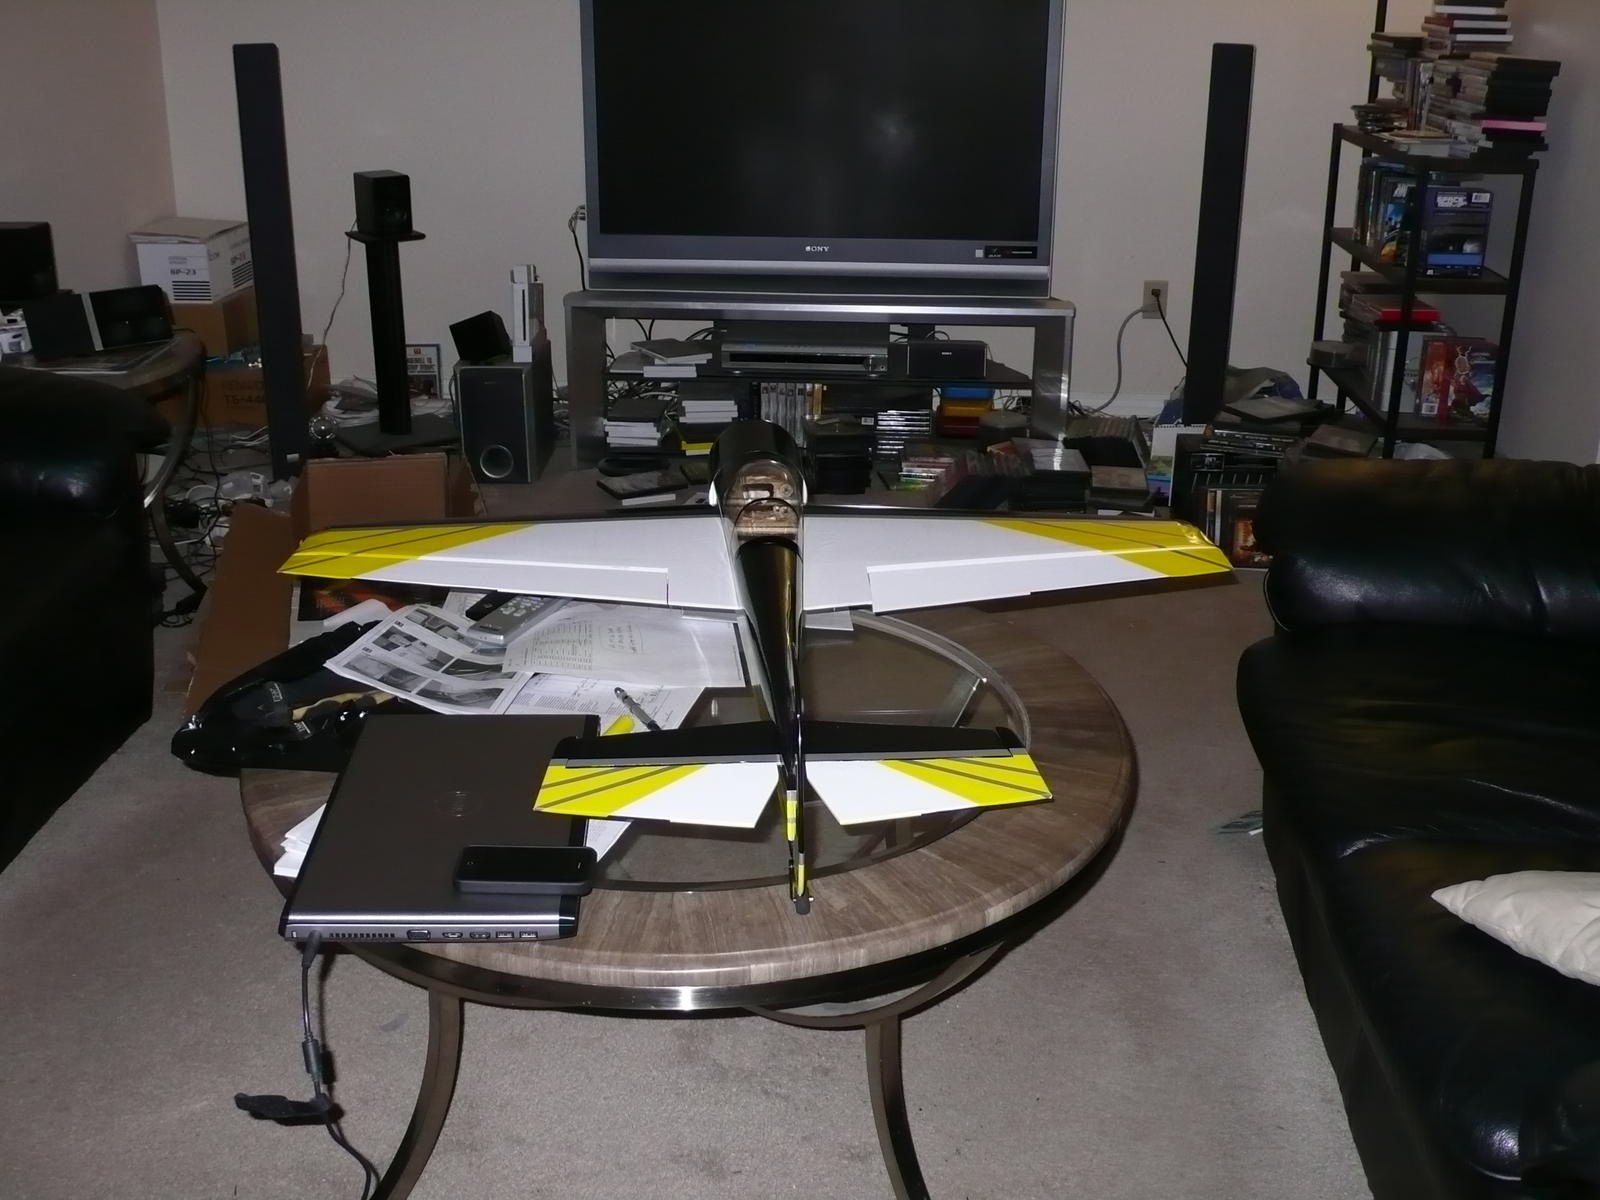 Starting to look like a Yak55 now!!!